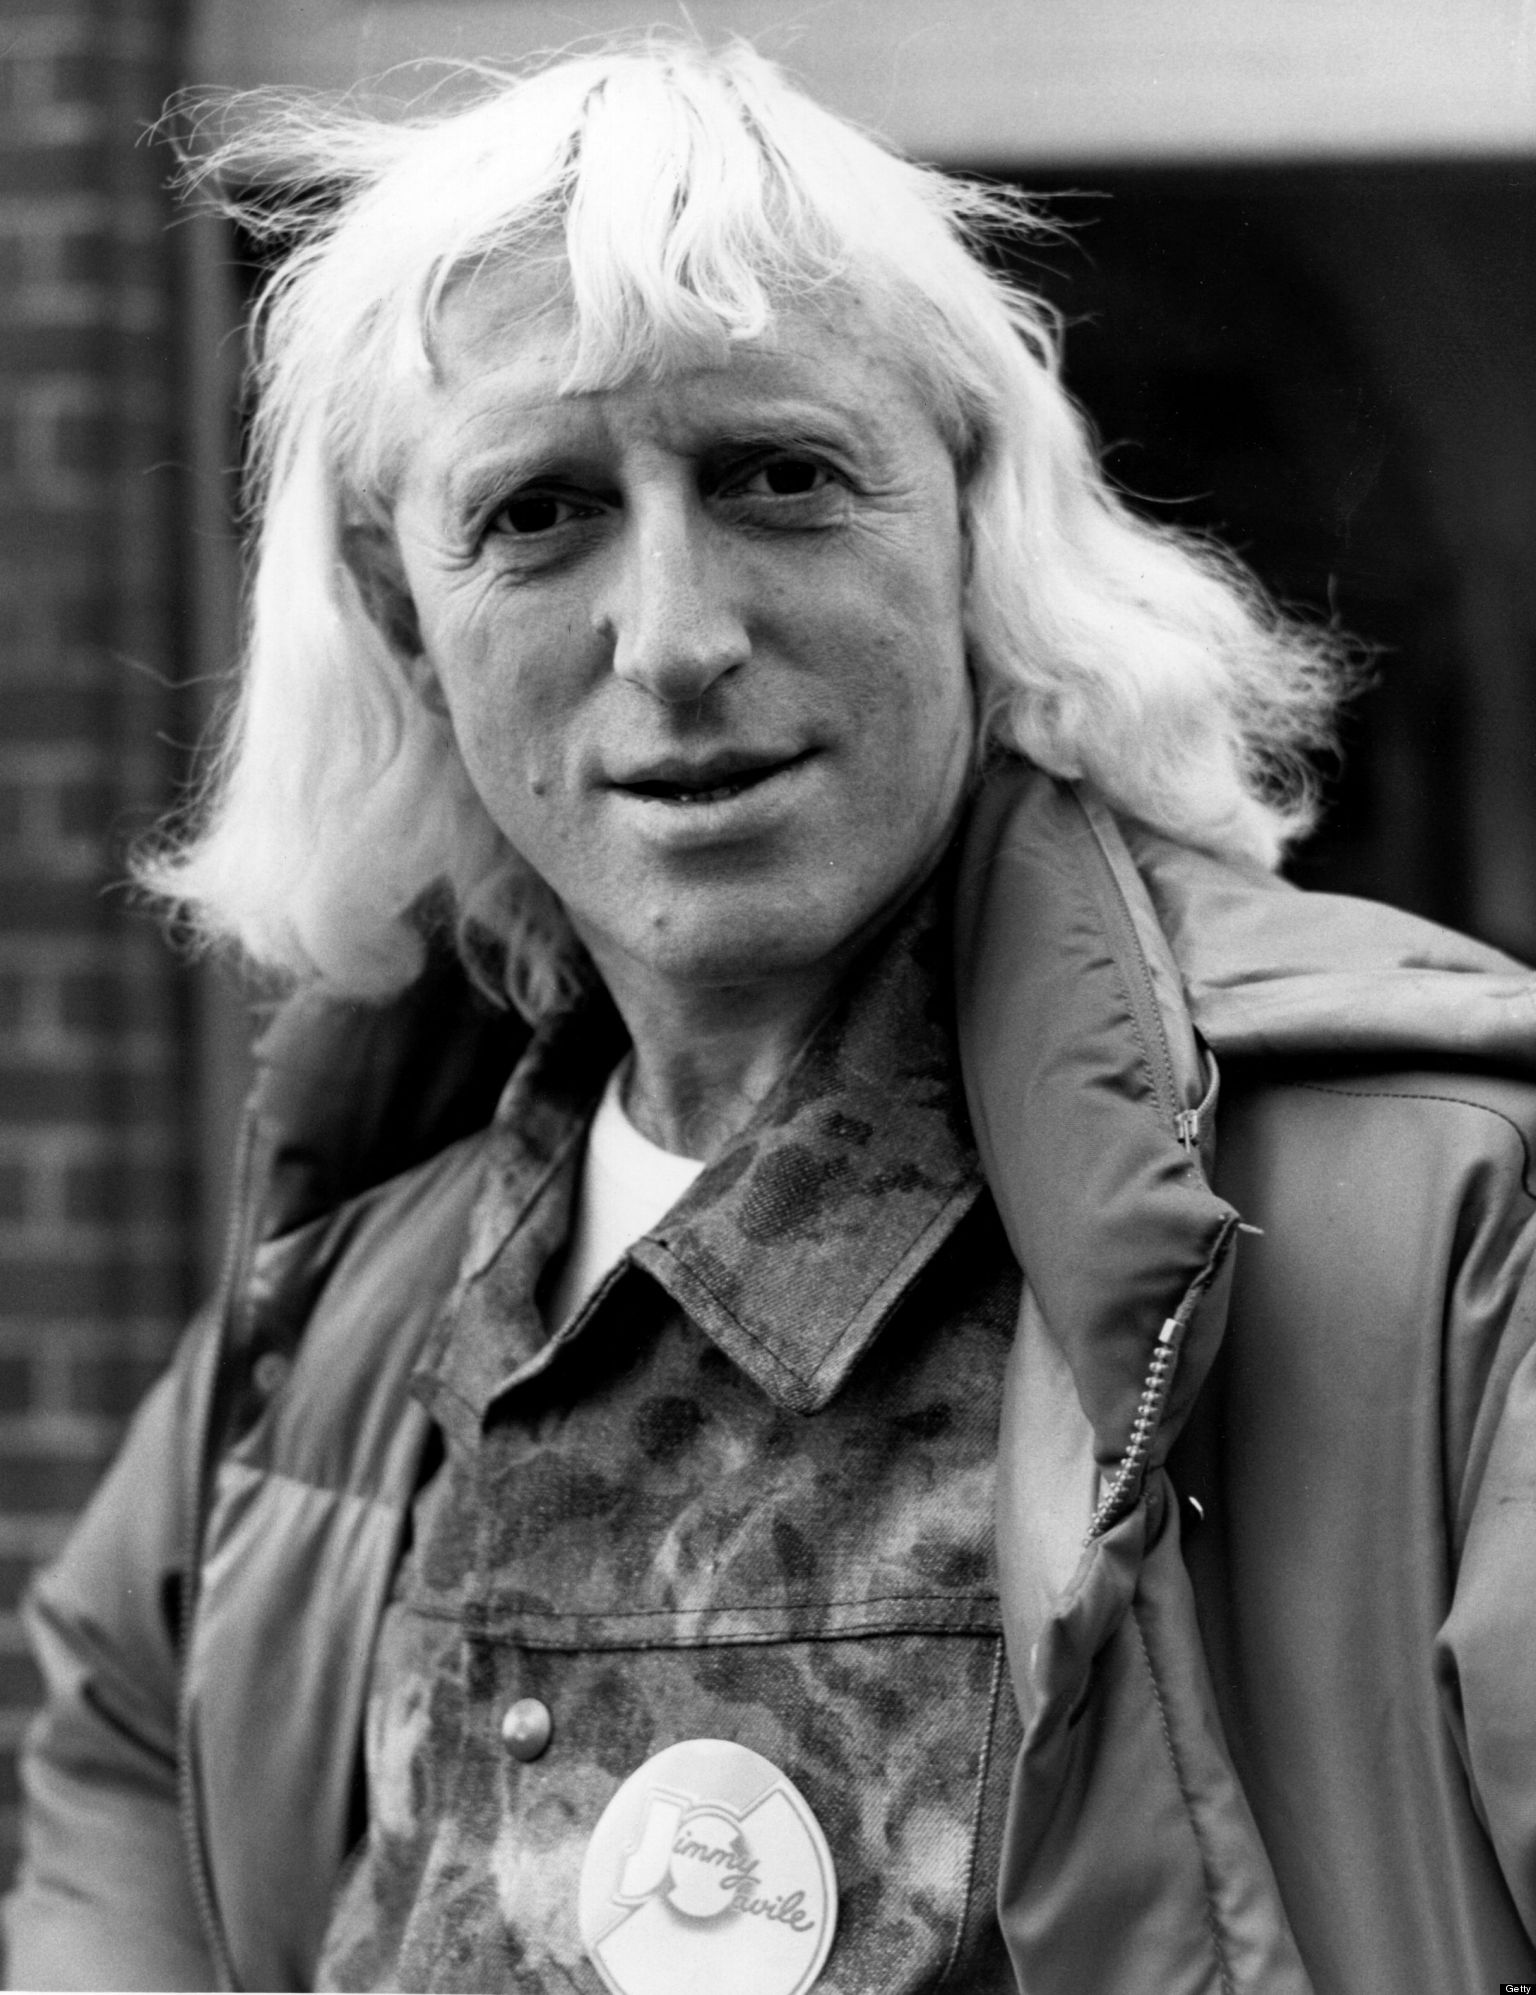 26/09/2021· comedian and actor steve coogan is to play the disgraced late tv personality jimmy savile in a new bbc one drama. BBC Apologizes As Jimmy Savile Sex Abuse Scandal Widens ...